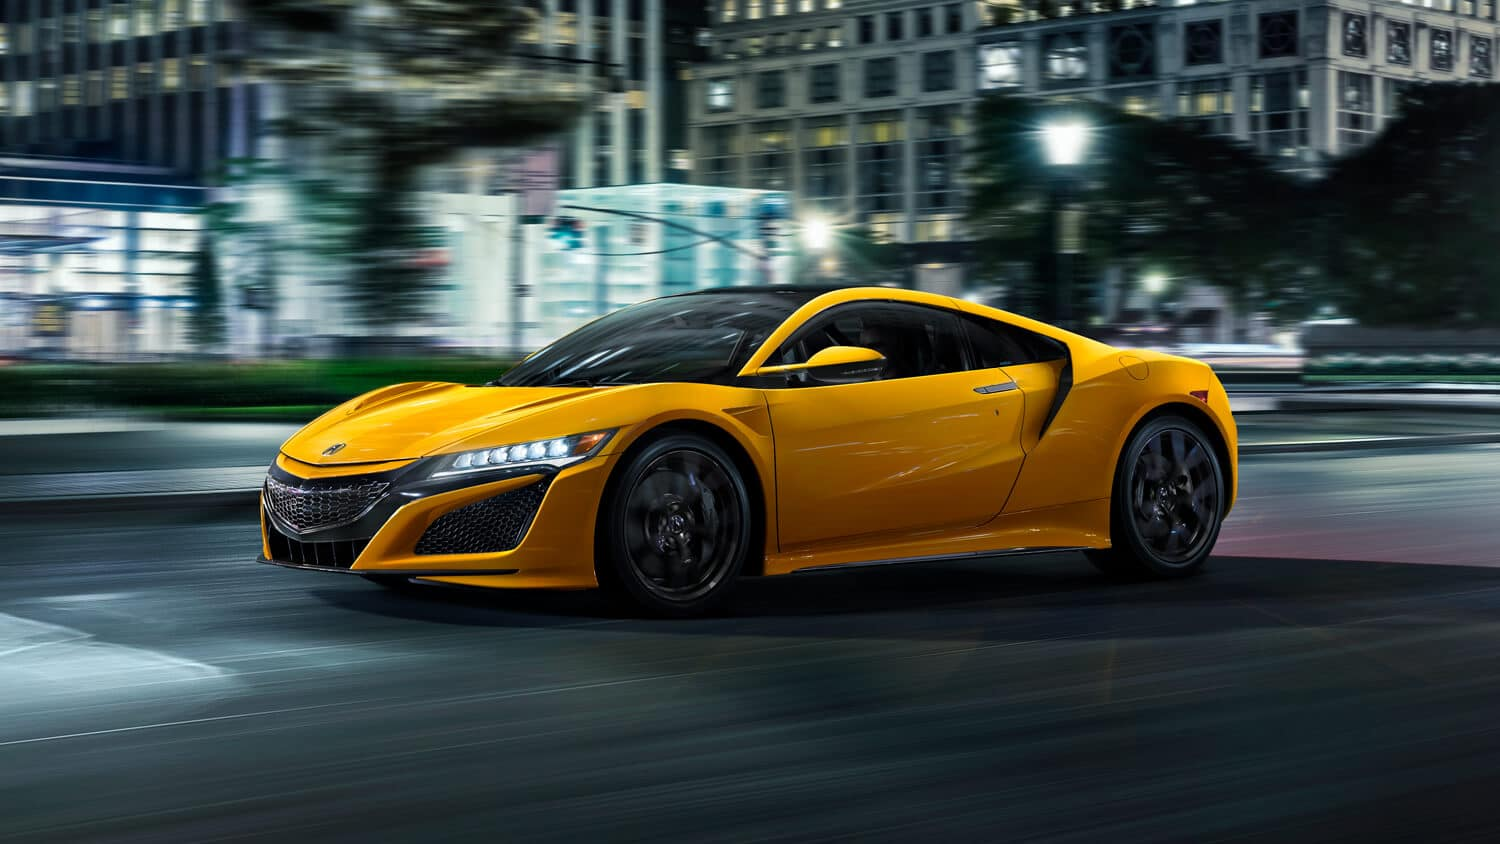 2020 Acura NSX Exterior Indy Yellow Pearl Side Angle